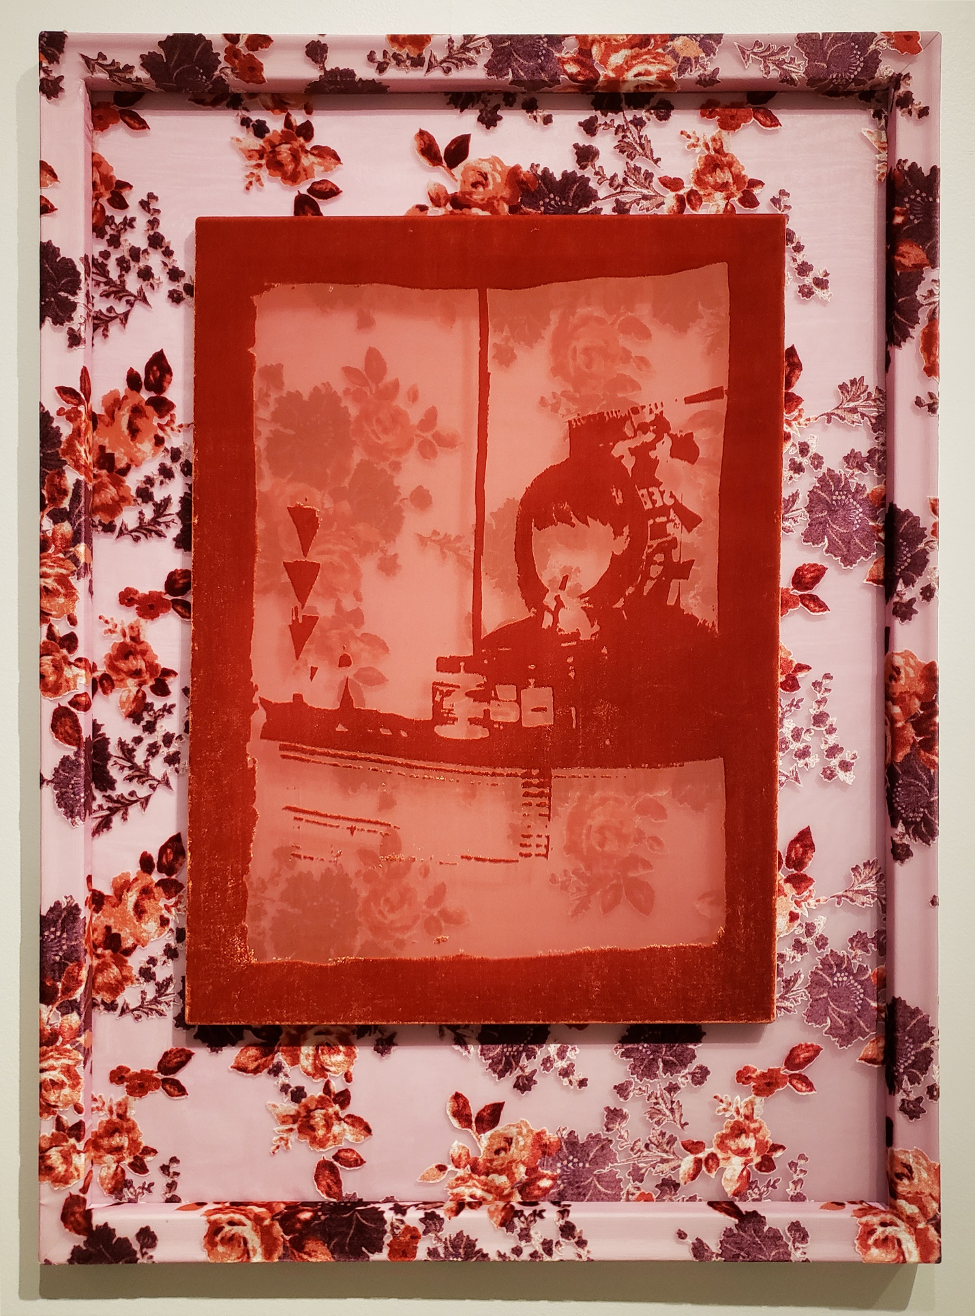 A photograph of a fiber etching made of silk and rayon depicts a young girl applying lipliner in a mirror. A bottle of Noxzema is featured in the foreground. Like the other etching featured in this series, the girl's face is missing from the image. The etching is seated in a frame that is brightly decorated with flowers.